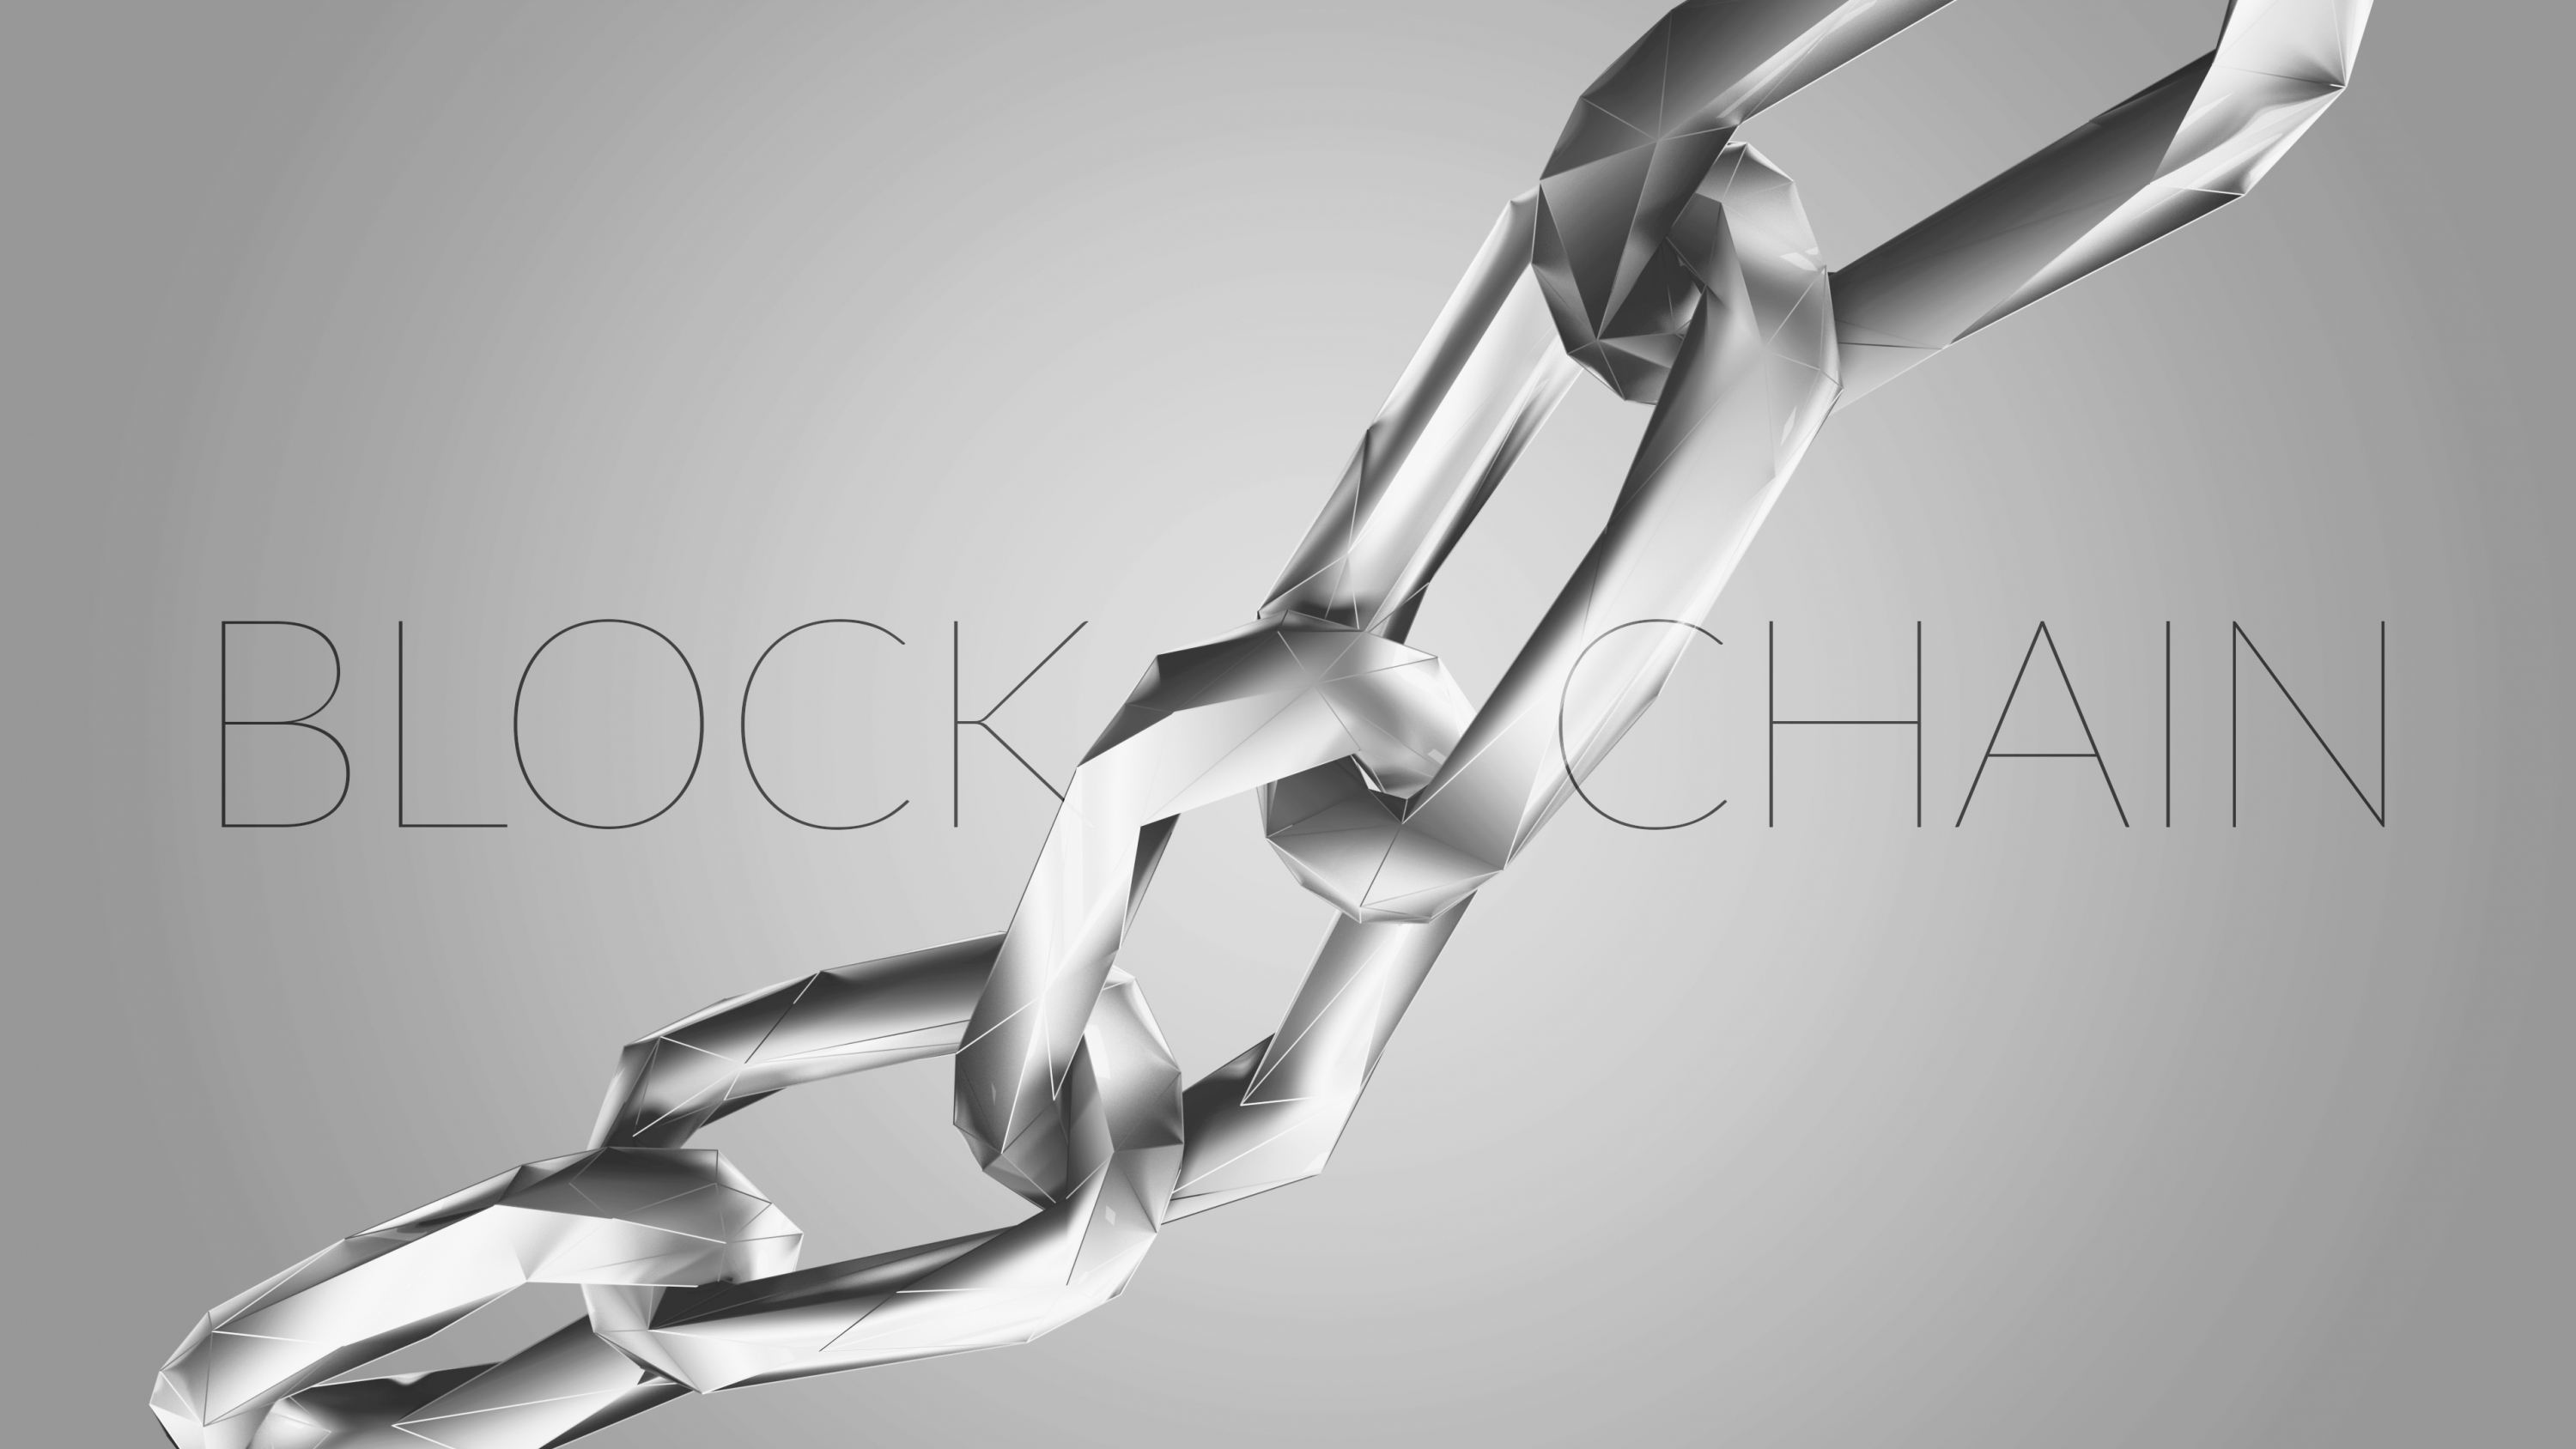 Change Healthcare will enable blockchain transactions